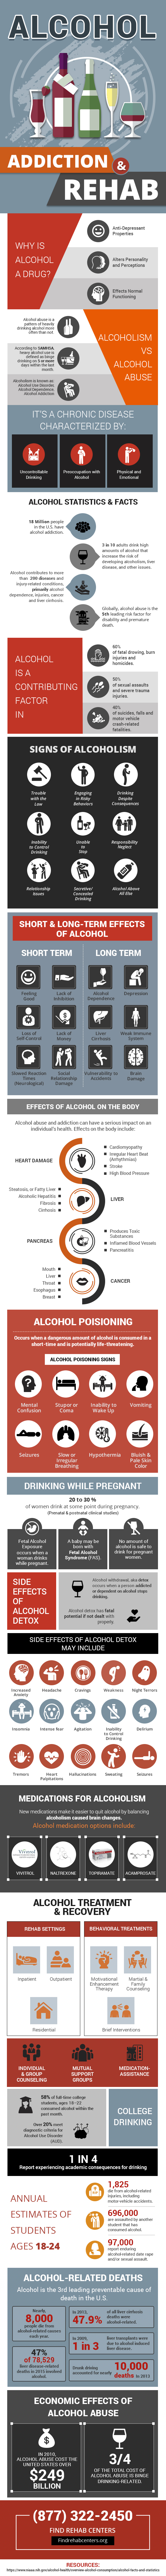 Alcohol Addiction and Rehab Infographic